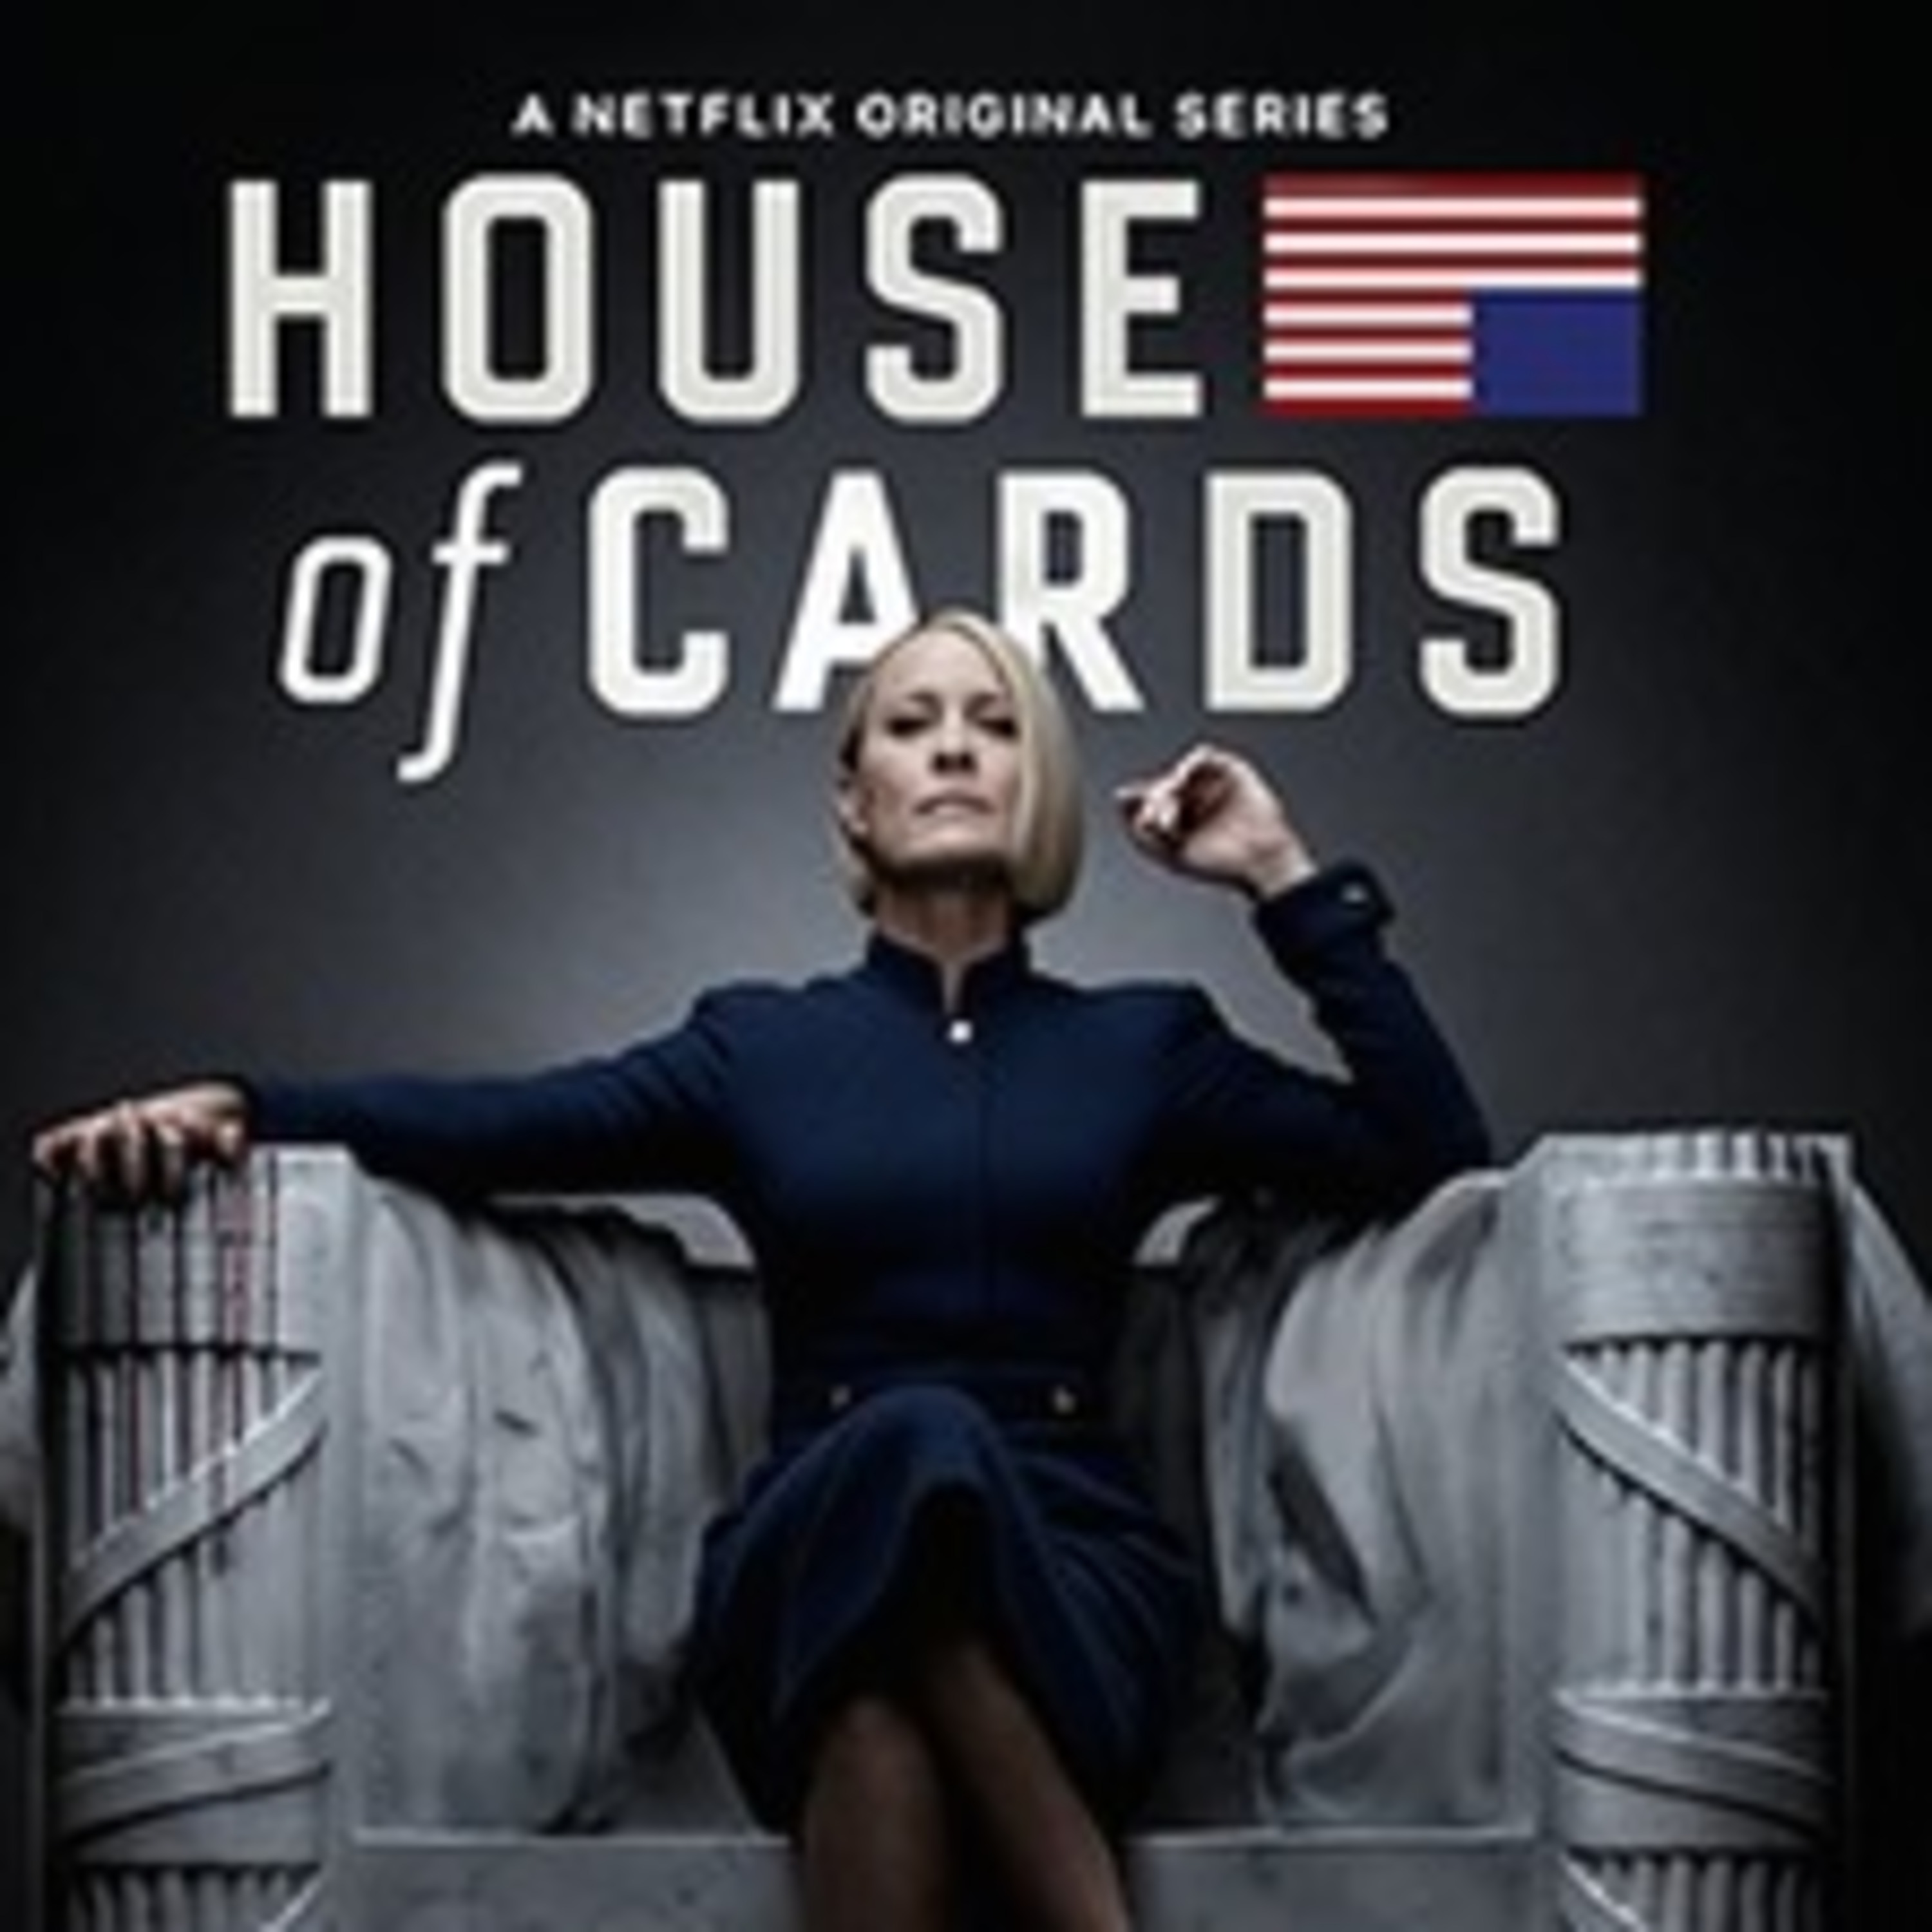 'House of Cards' - Final Season Review